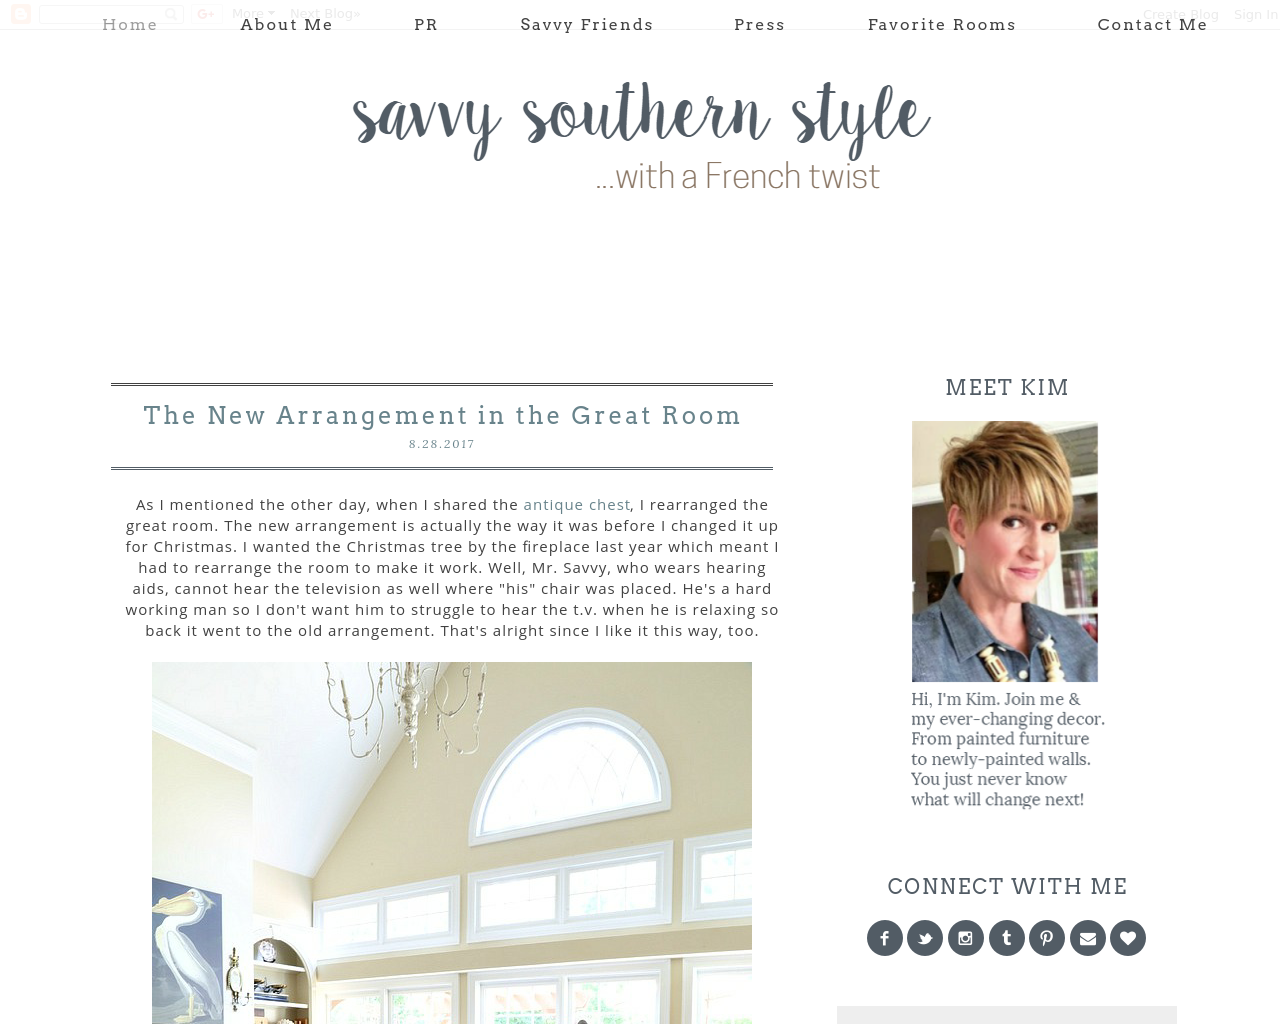 Savvysouthernstyle.net-Advertising-Reviews-Pricing